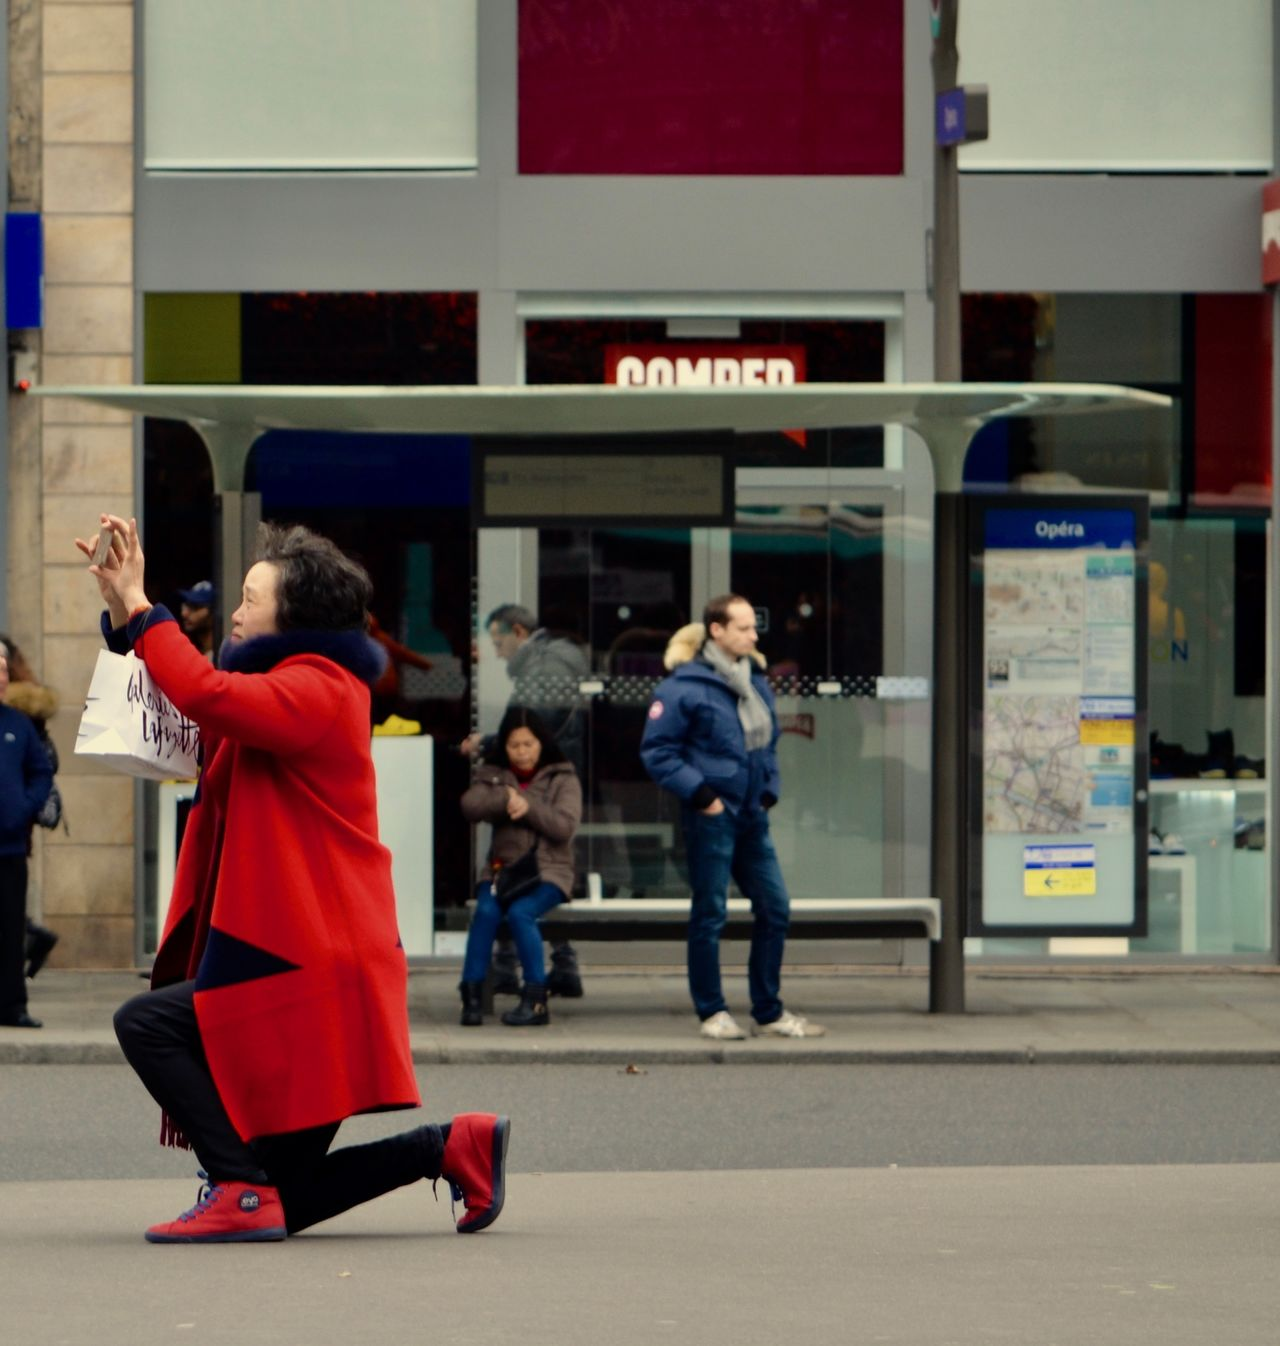 Captured Moment City Kneeling Outdoors Paris Photography Red Red Coat Red Shoes Smile Taking Photos Tourist